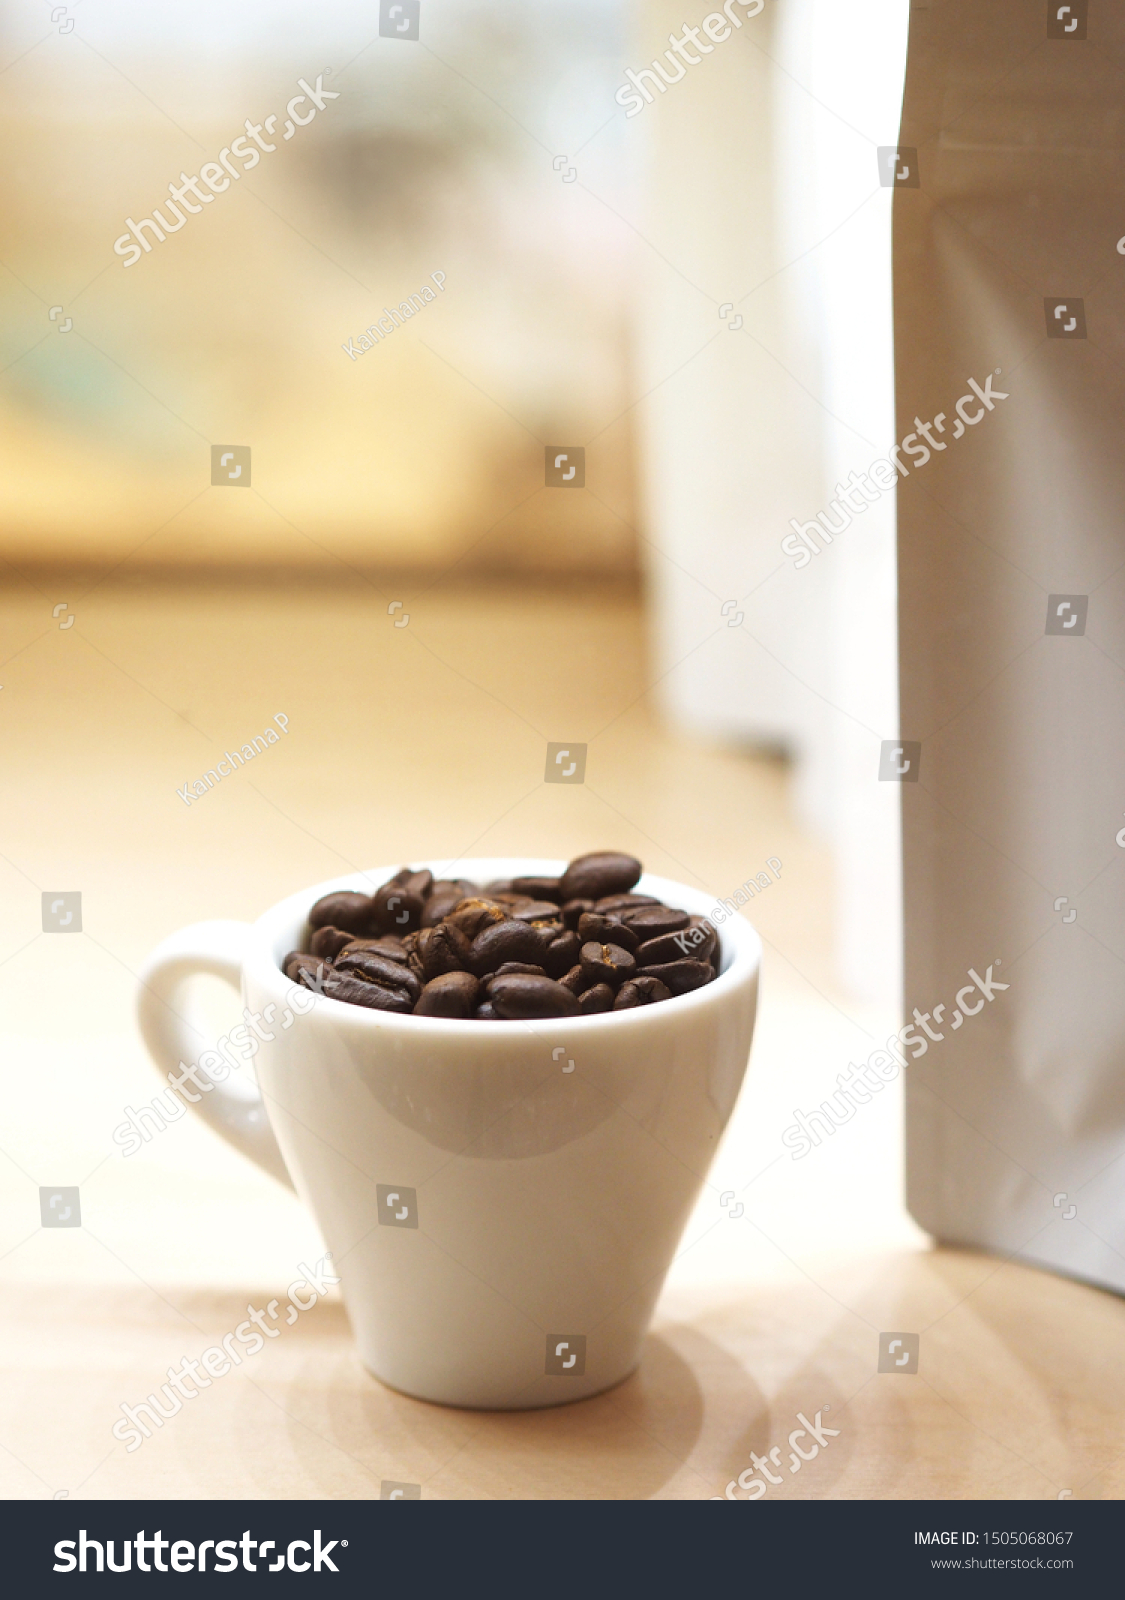 Close Roasted Coffee Bean White Cup Food And Drink Stock Image 1505068067